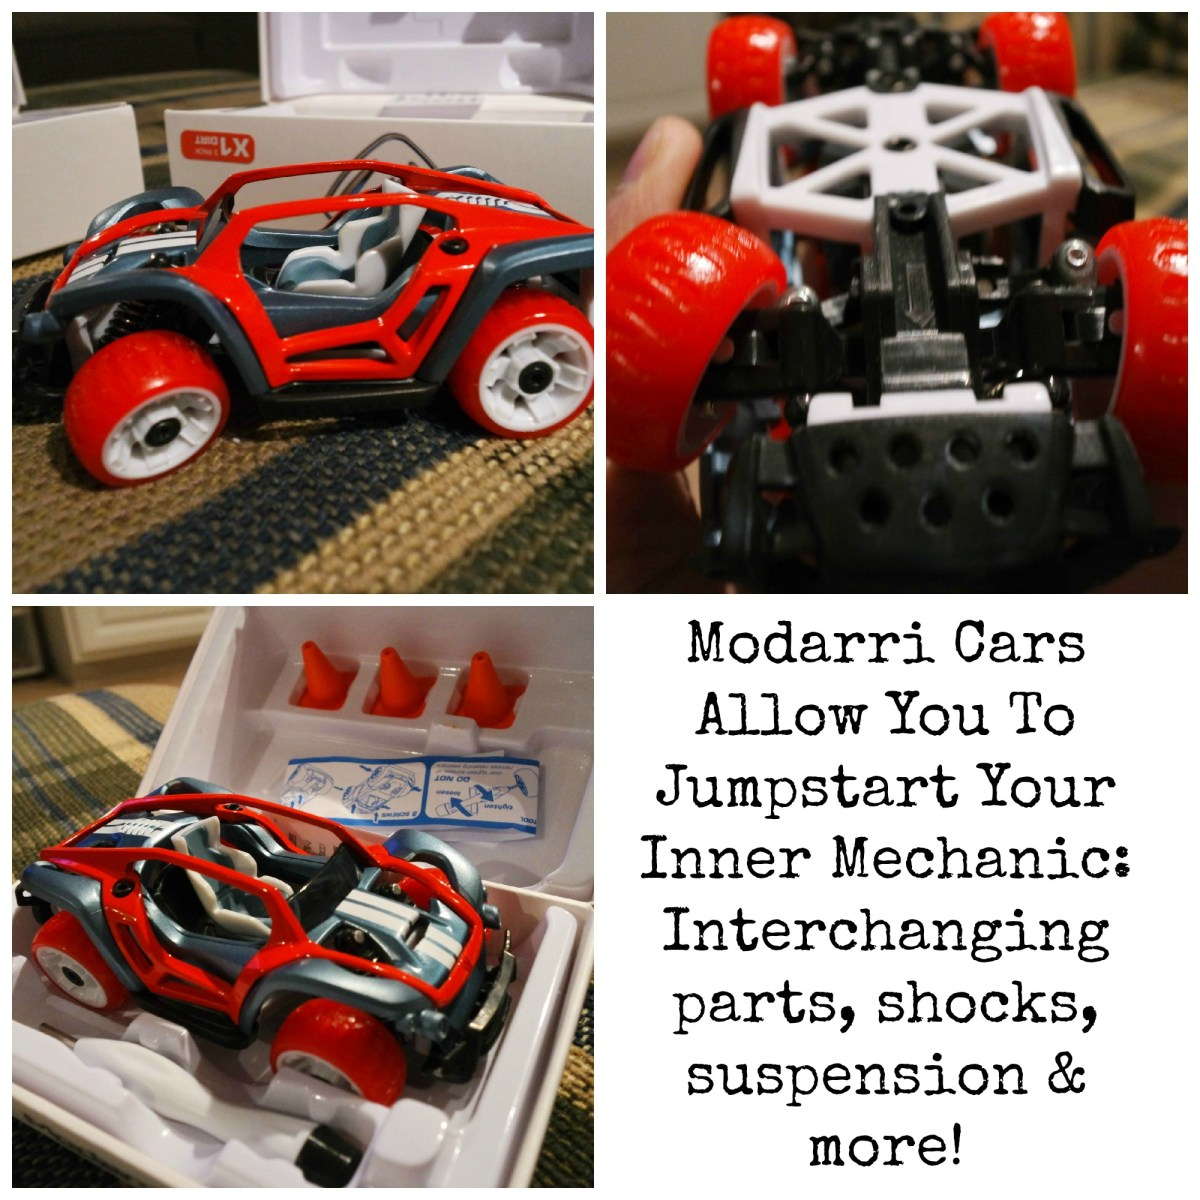 Jumpstart Your Inner Mechanic With Cool Modarri Cars! #dadchat #Giveaway